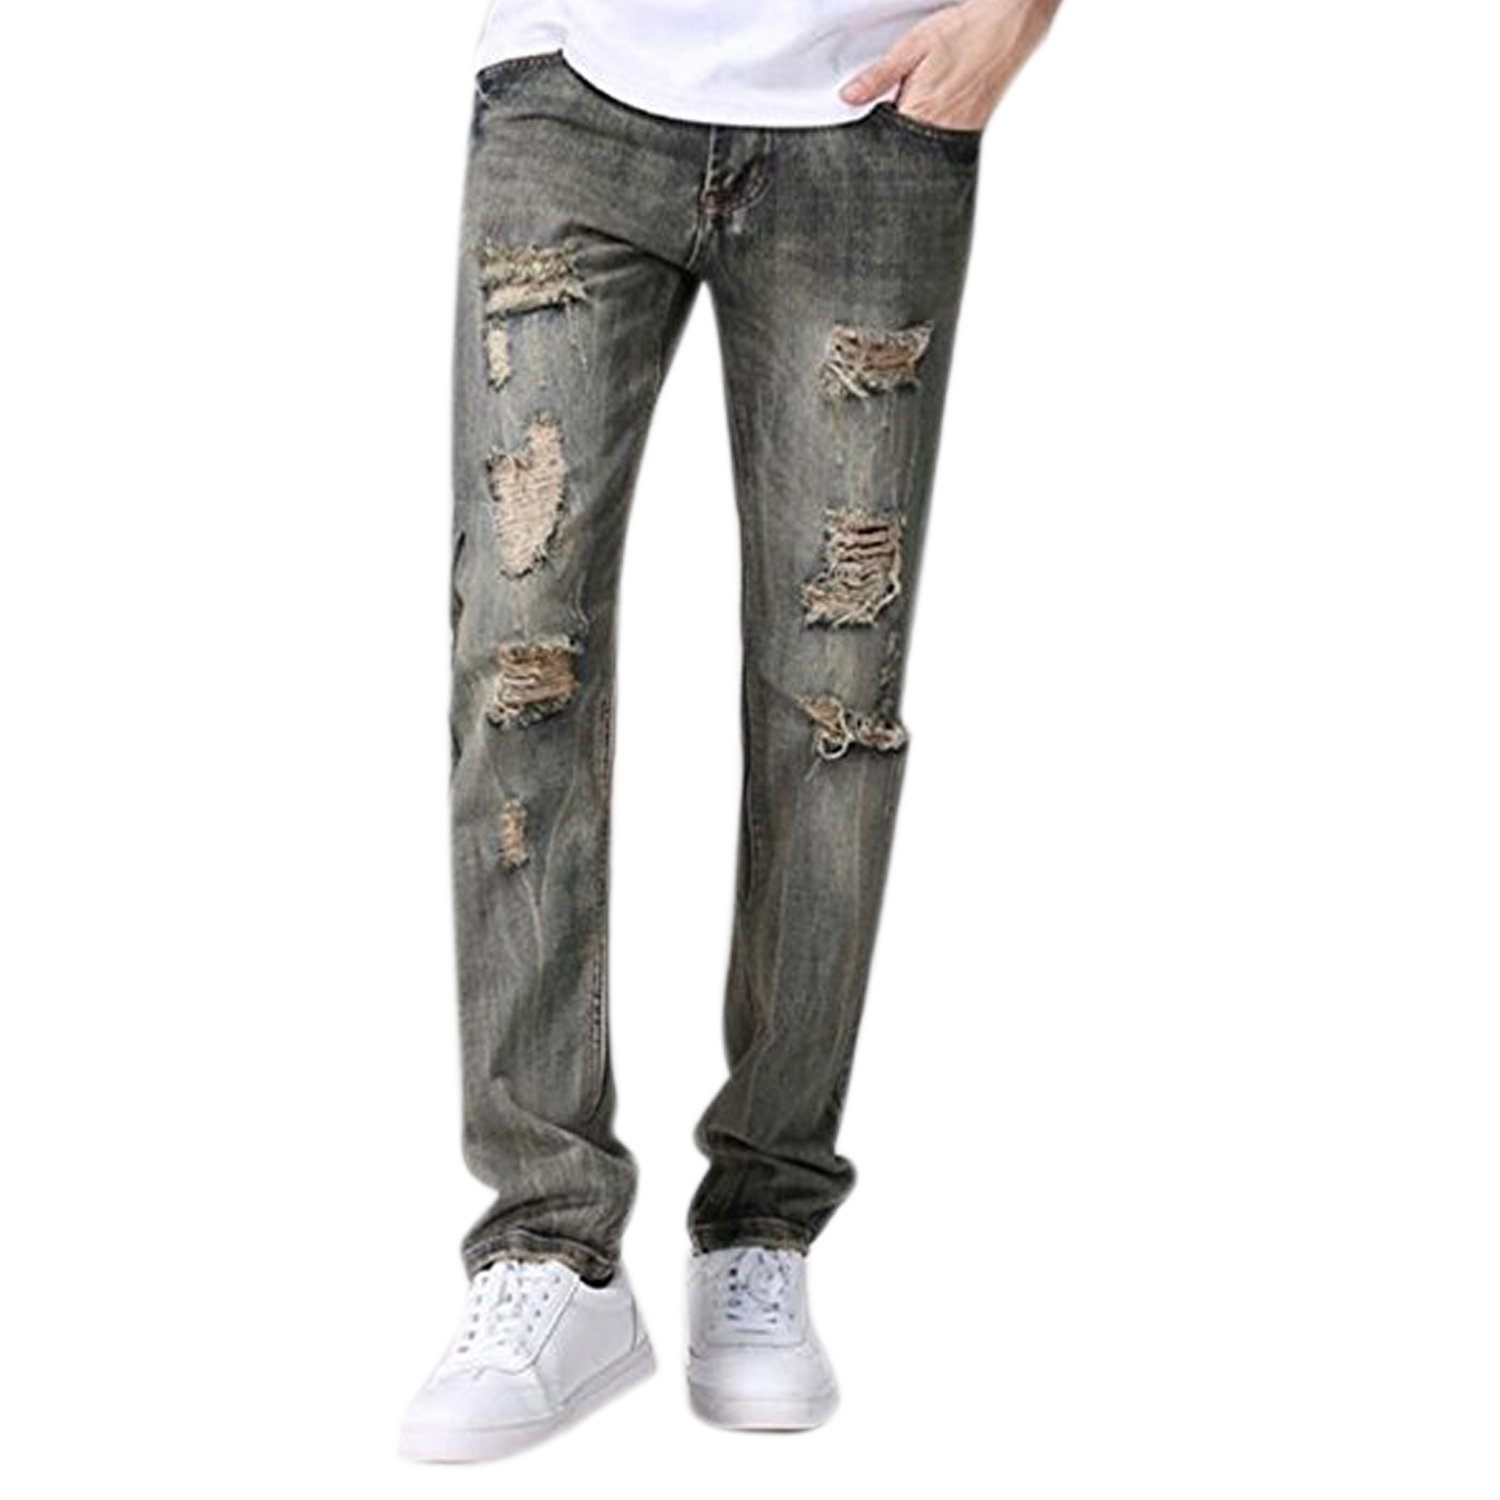 d8c7d697bb4 Evelin LEE Men s Ripped Slim Fit Straight Denim Jeans Jogger Pants Vintage  Style with Broken Holes at Amazon Men s Clothing store